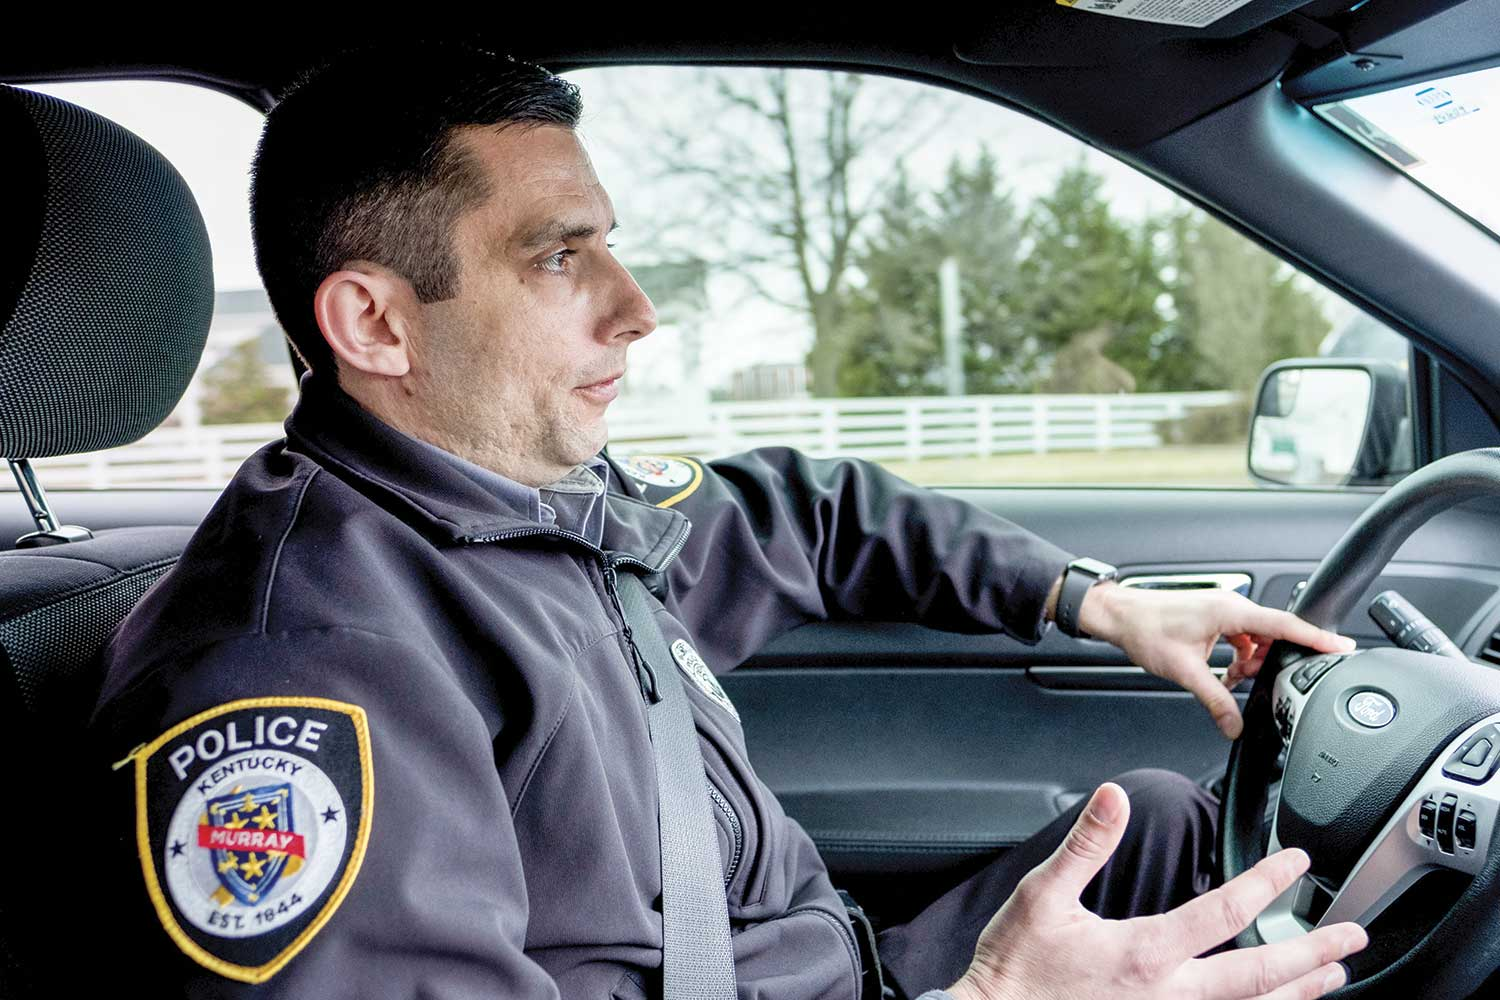 Murray Police Sgt. Sam Bierds has served MPD since 2010, and the recent Academy of Police Supervision graduate became a sergeant in July 2016. Bierds said his philosophy – which is shared by many on his shift and the agency as a whole – is that it is the day-to-day interactions and relationship building with the community that makes the department successful. (Photo by Jim Robertson)